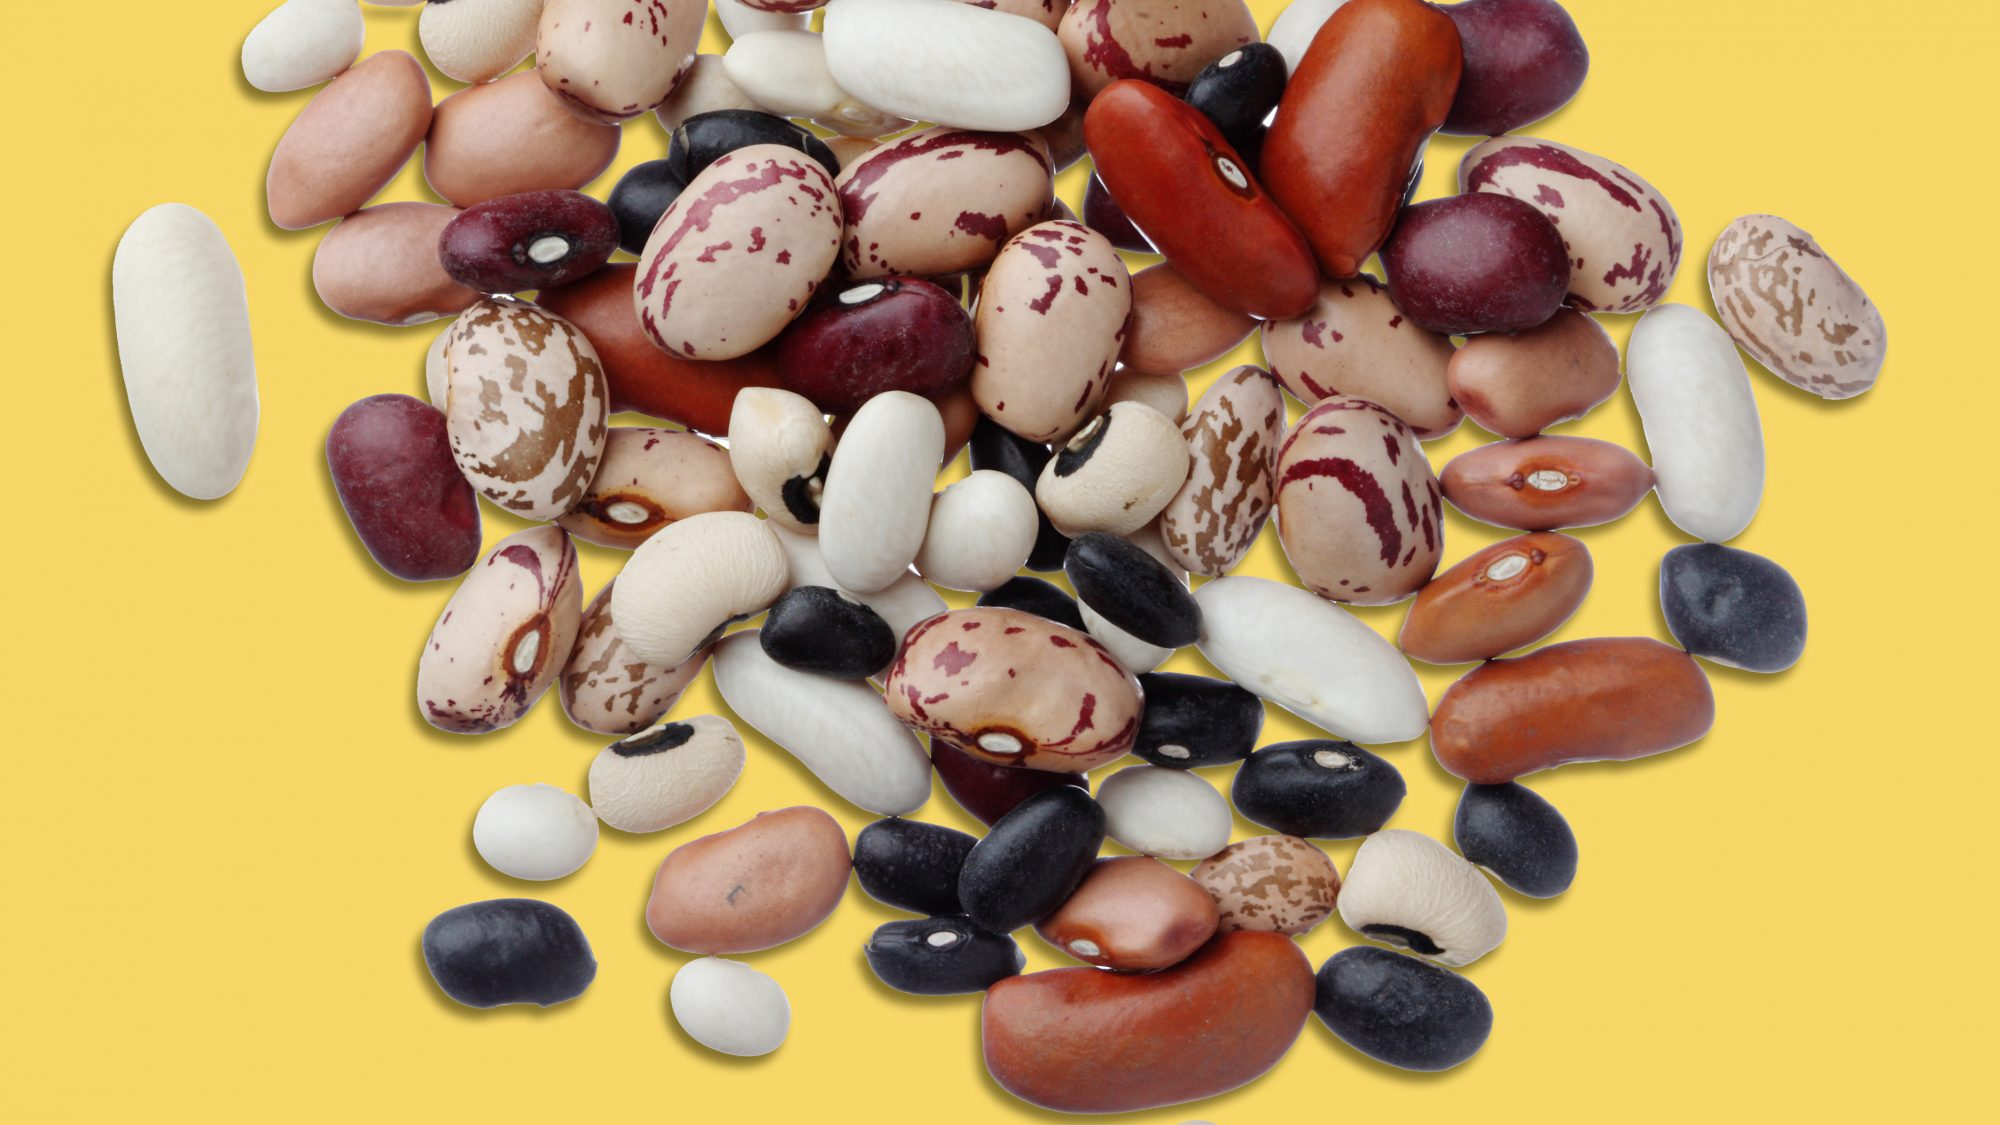 Health benefits of beans - bean nutrition (Variety of beans)